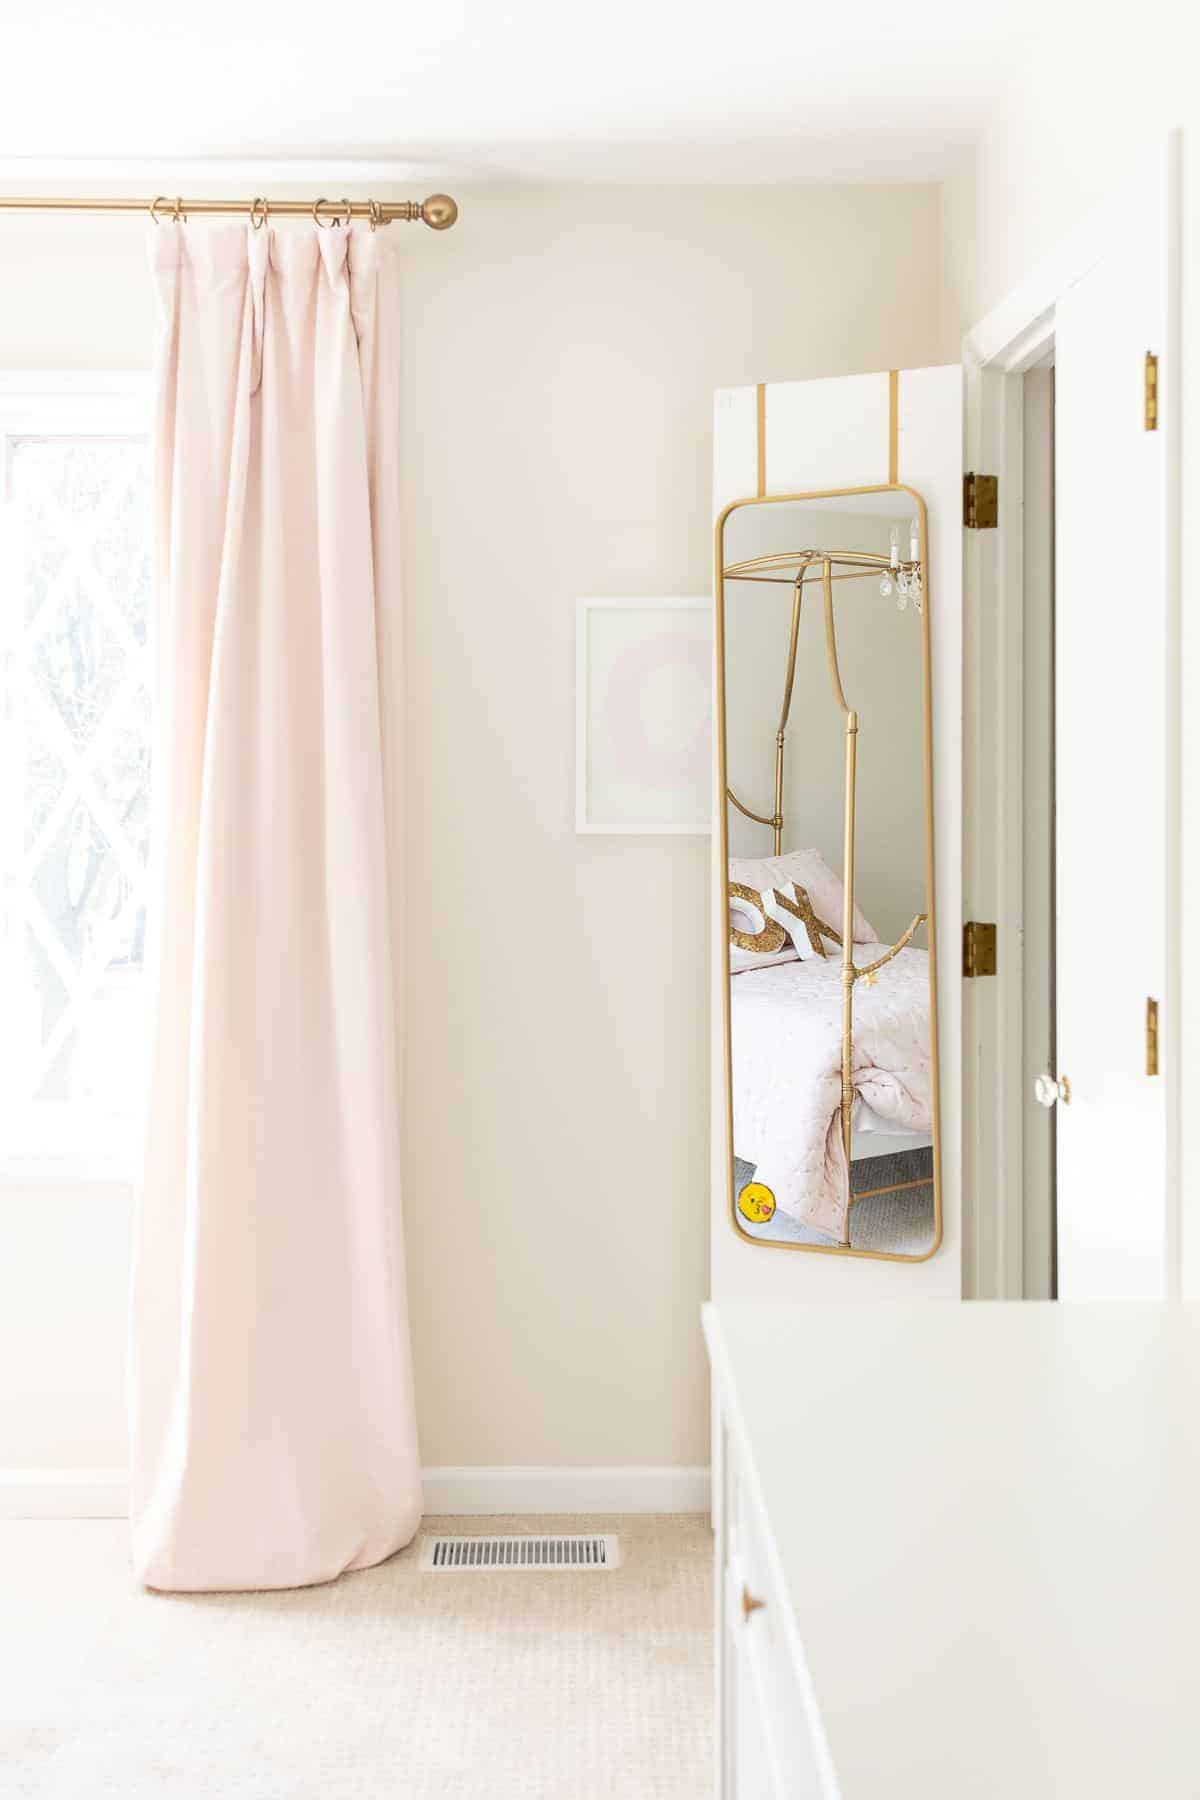 A girl's bedroom with pink curtains, light carpet and white painted baseboards.